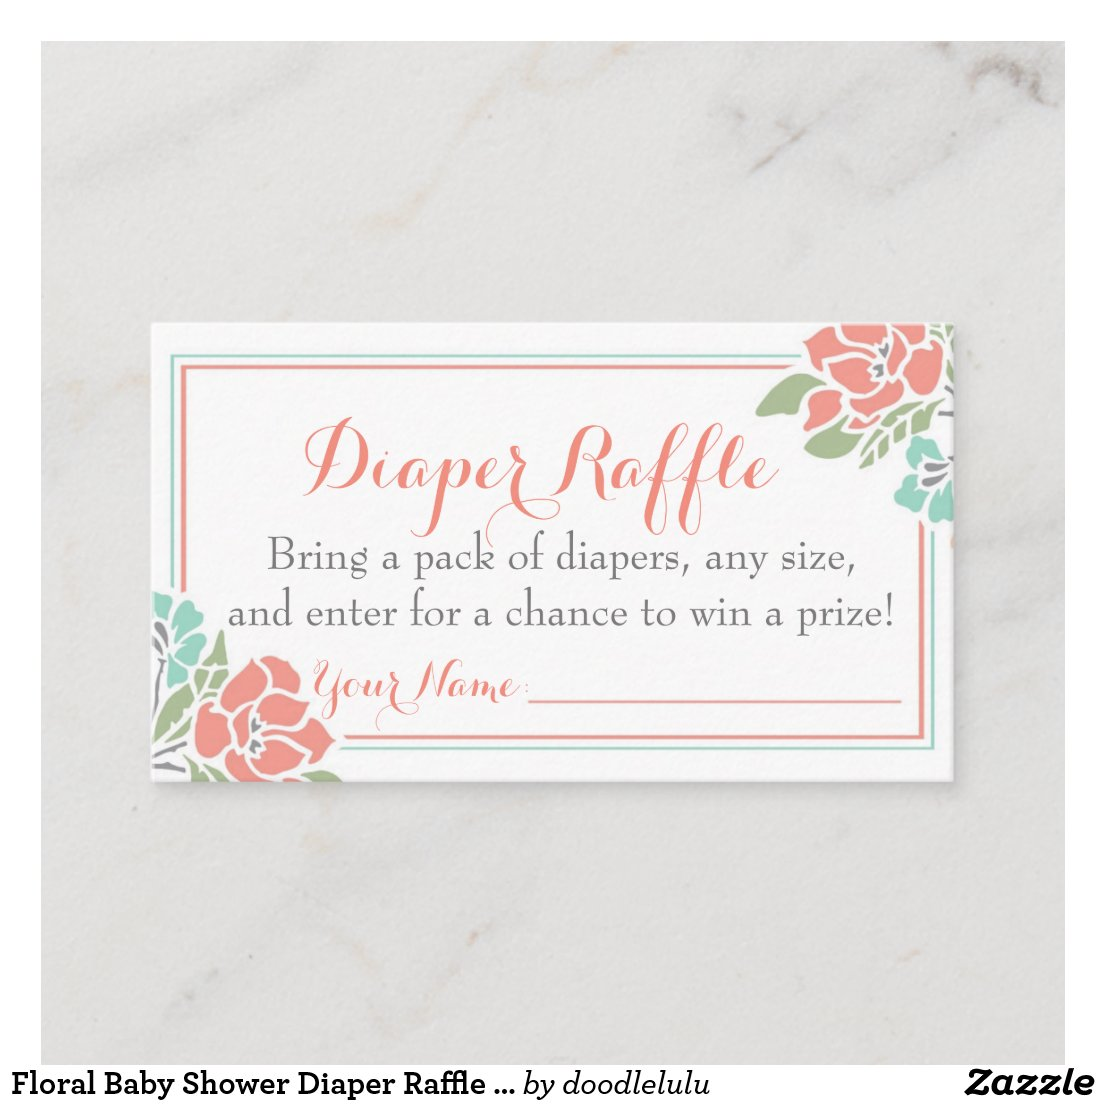 Floral Diaper Raffle Ticket in Coral and Teal Enclosure Card